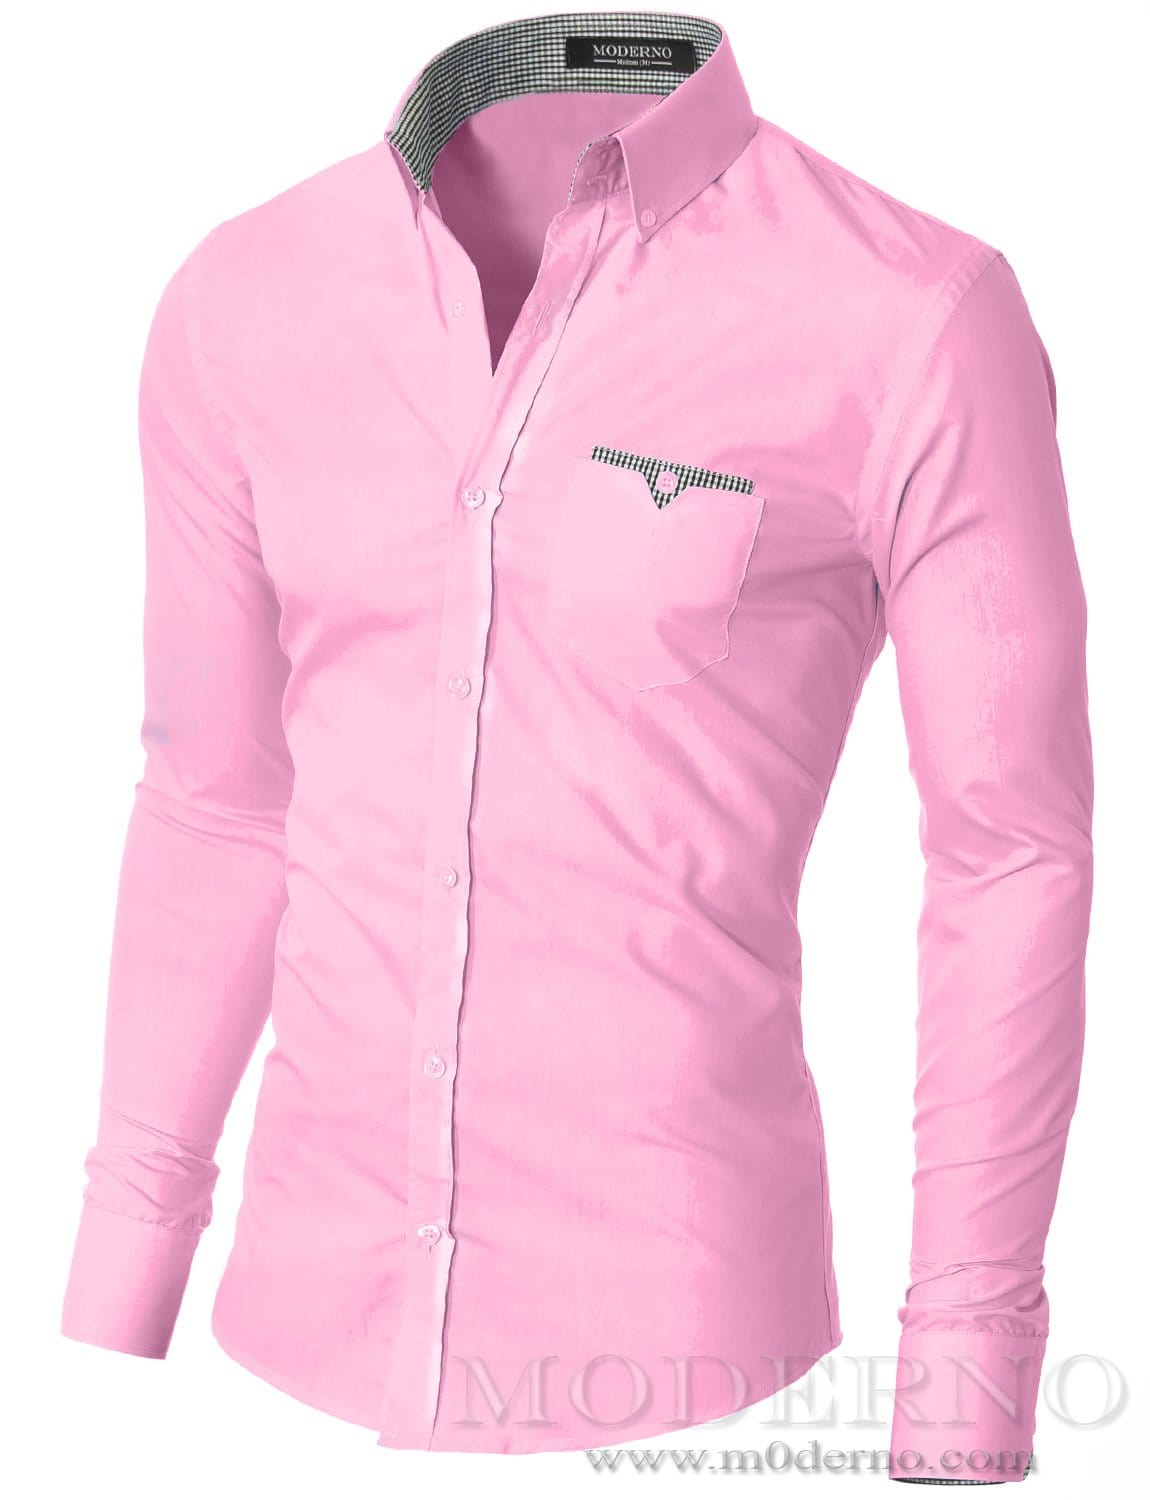 Mens button down pink shirt with one pocket by MODERNO ...